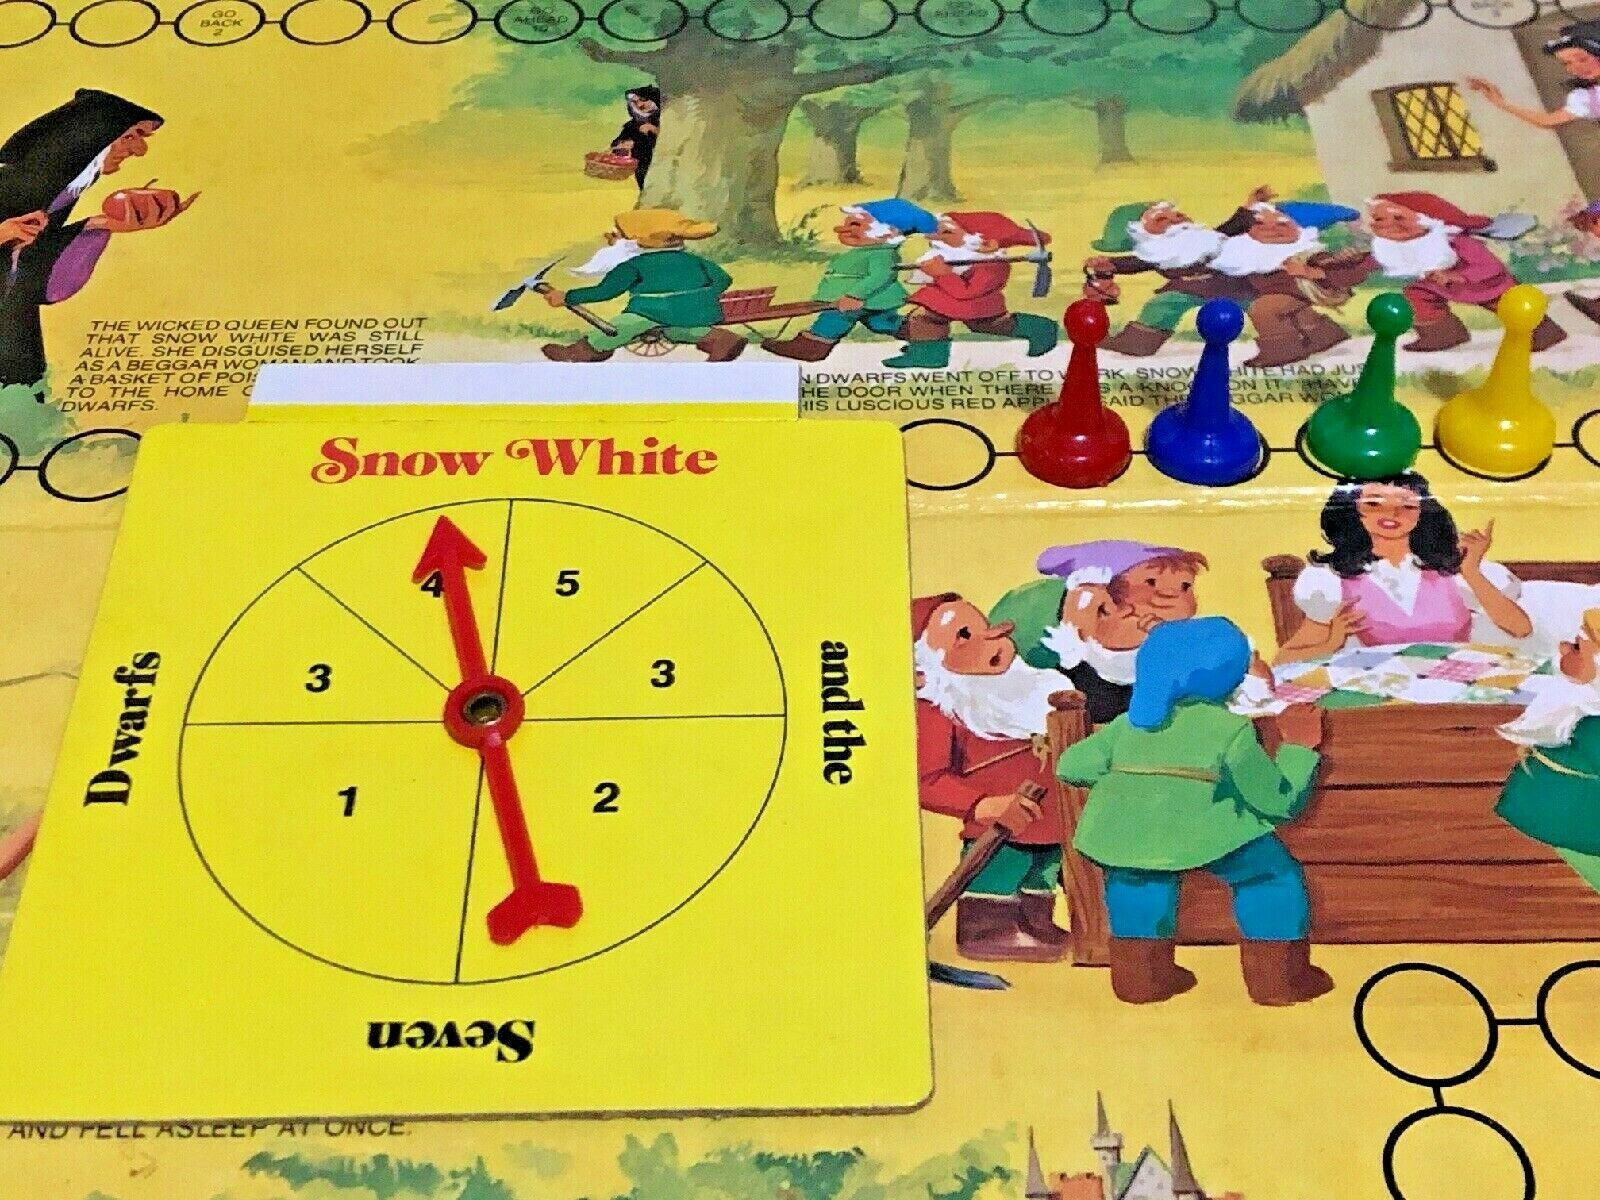 Vintage Snow White and the Seven Dwarfs Board Game Cadaco 1977 COMPLETE image 2